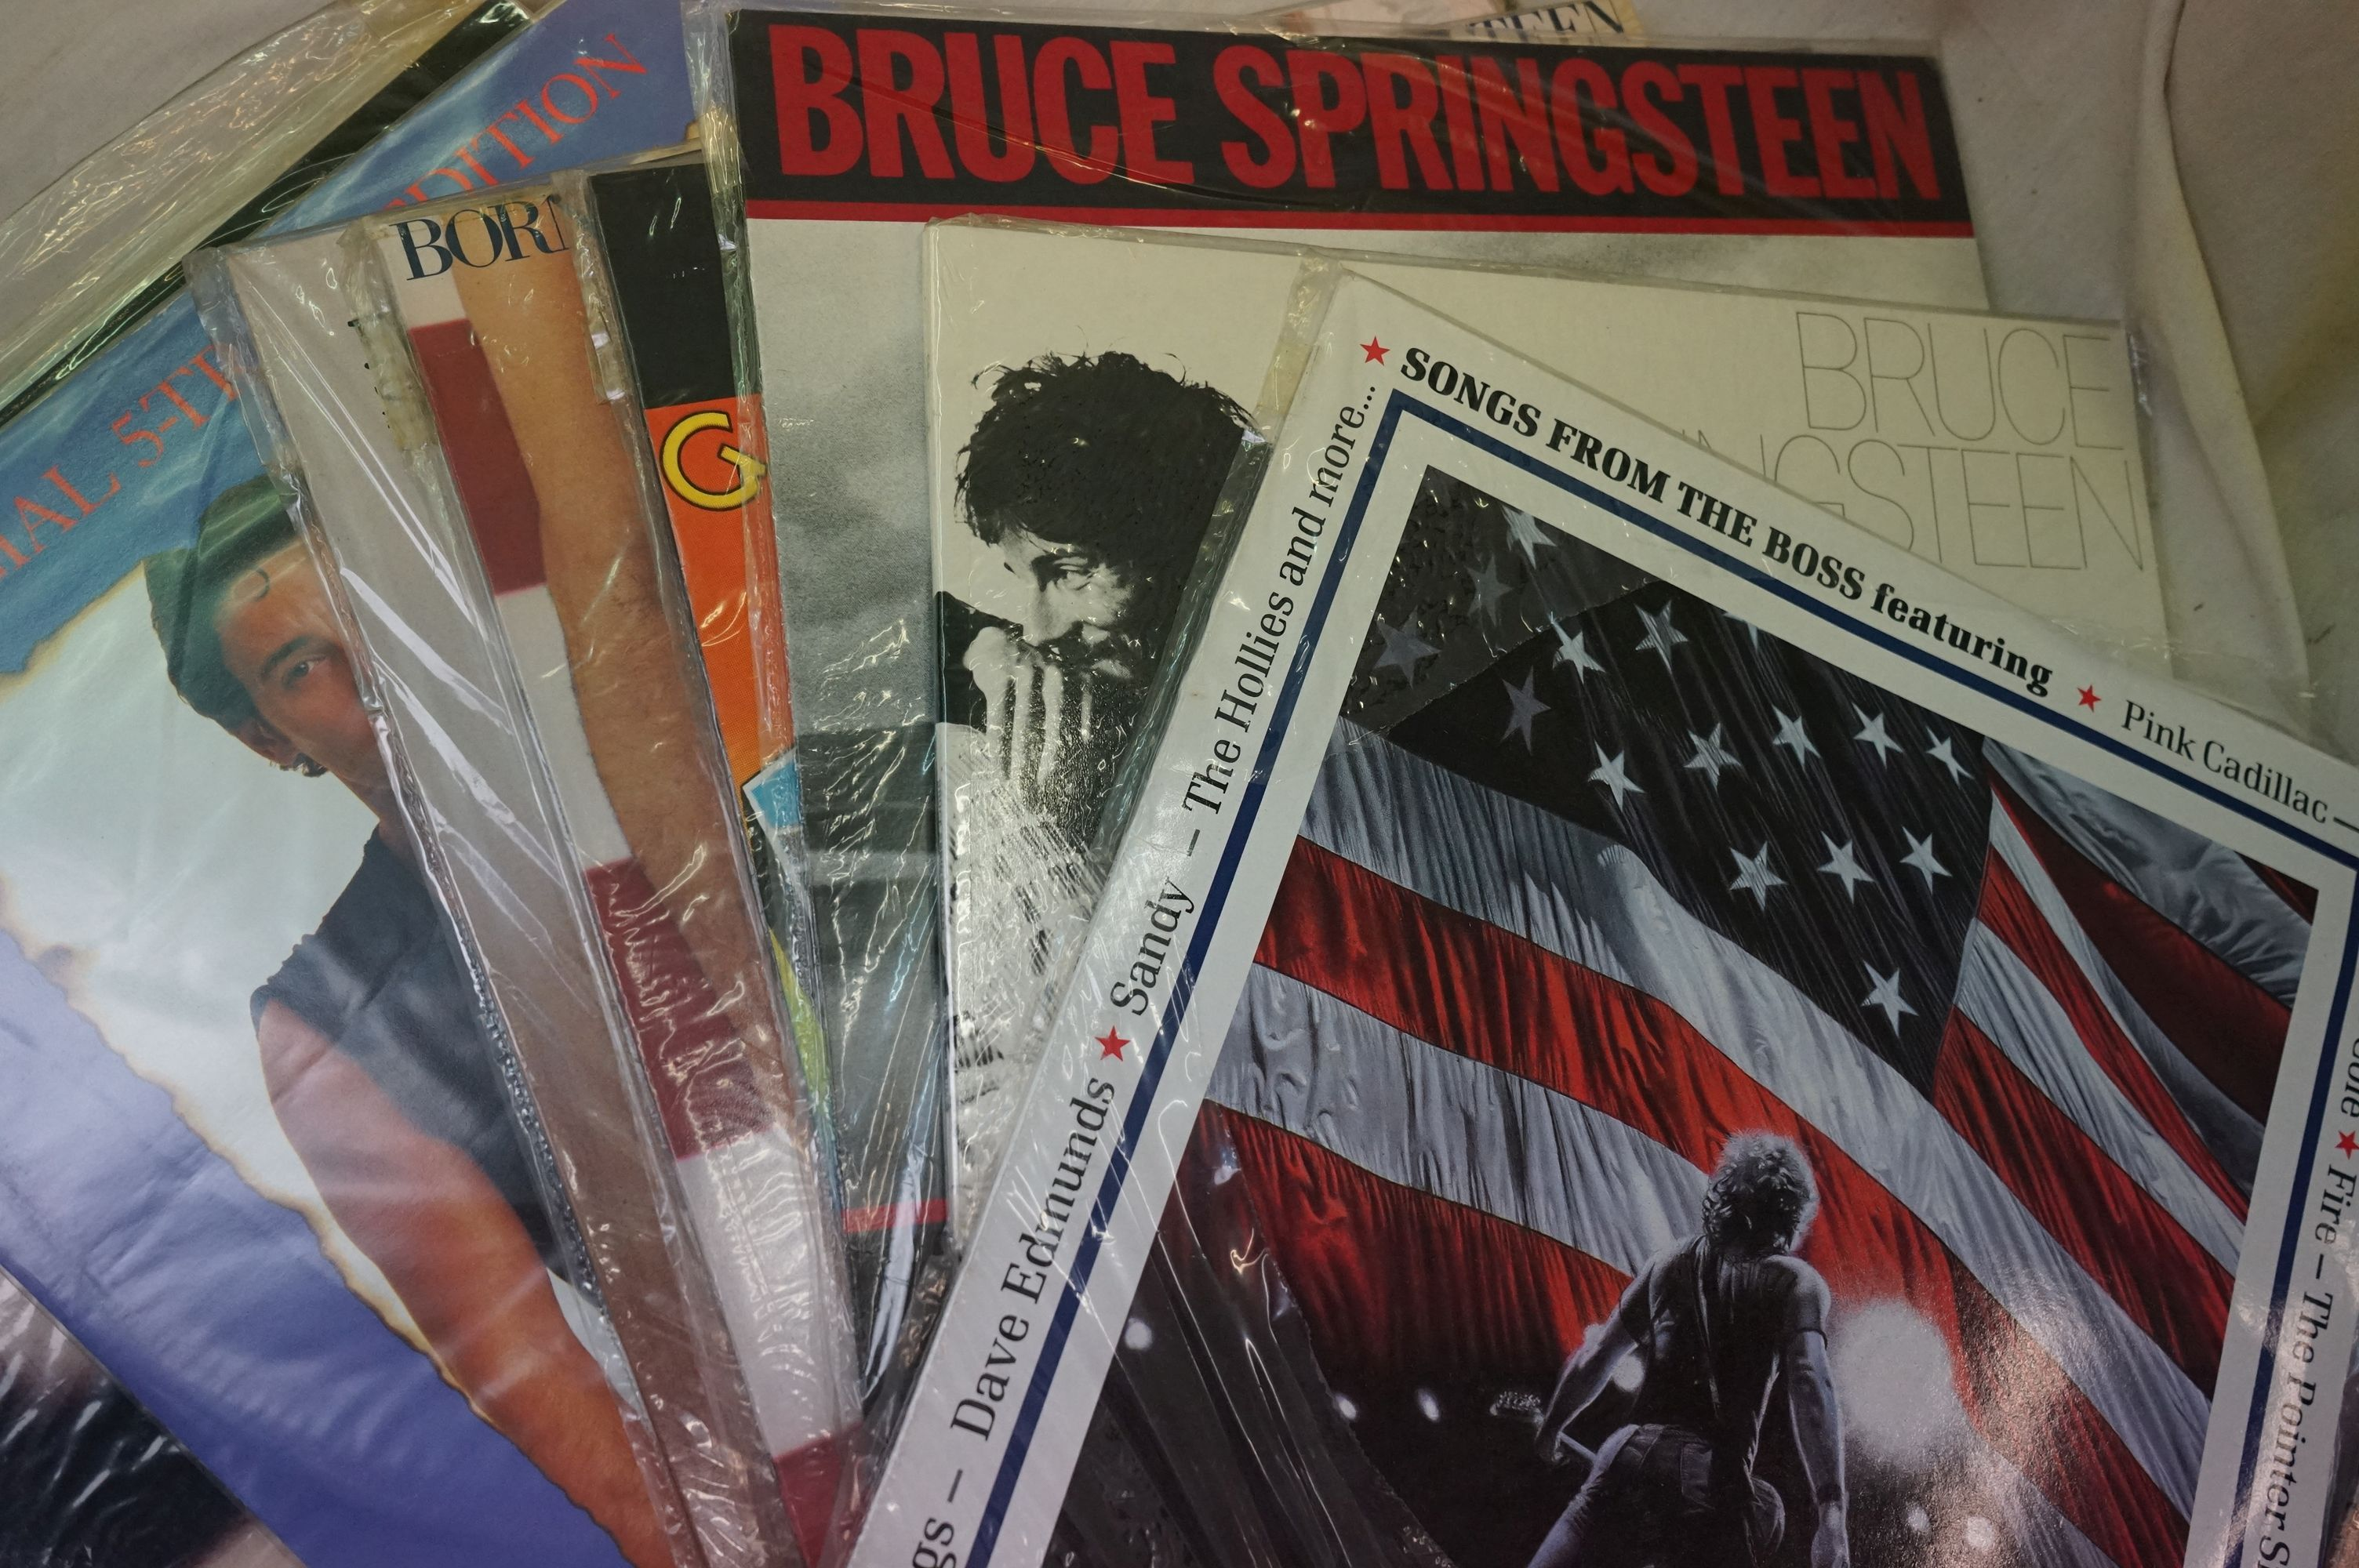 Vinyl - 220 LPs to include Pop, Rock, Easy Listening etc, sleeves and vinyl vg+ (two boxes) - Image 5 of 5